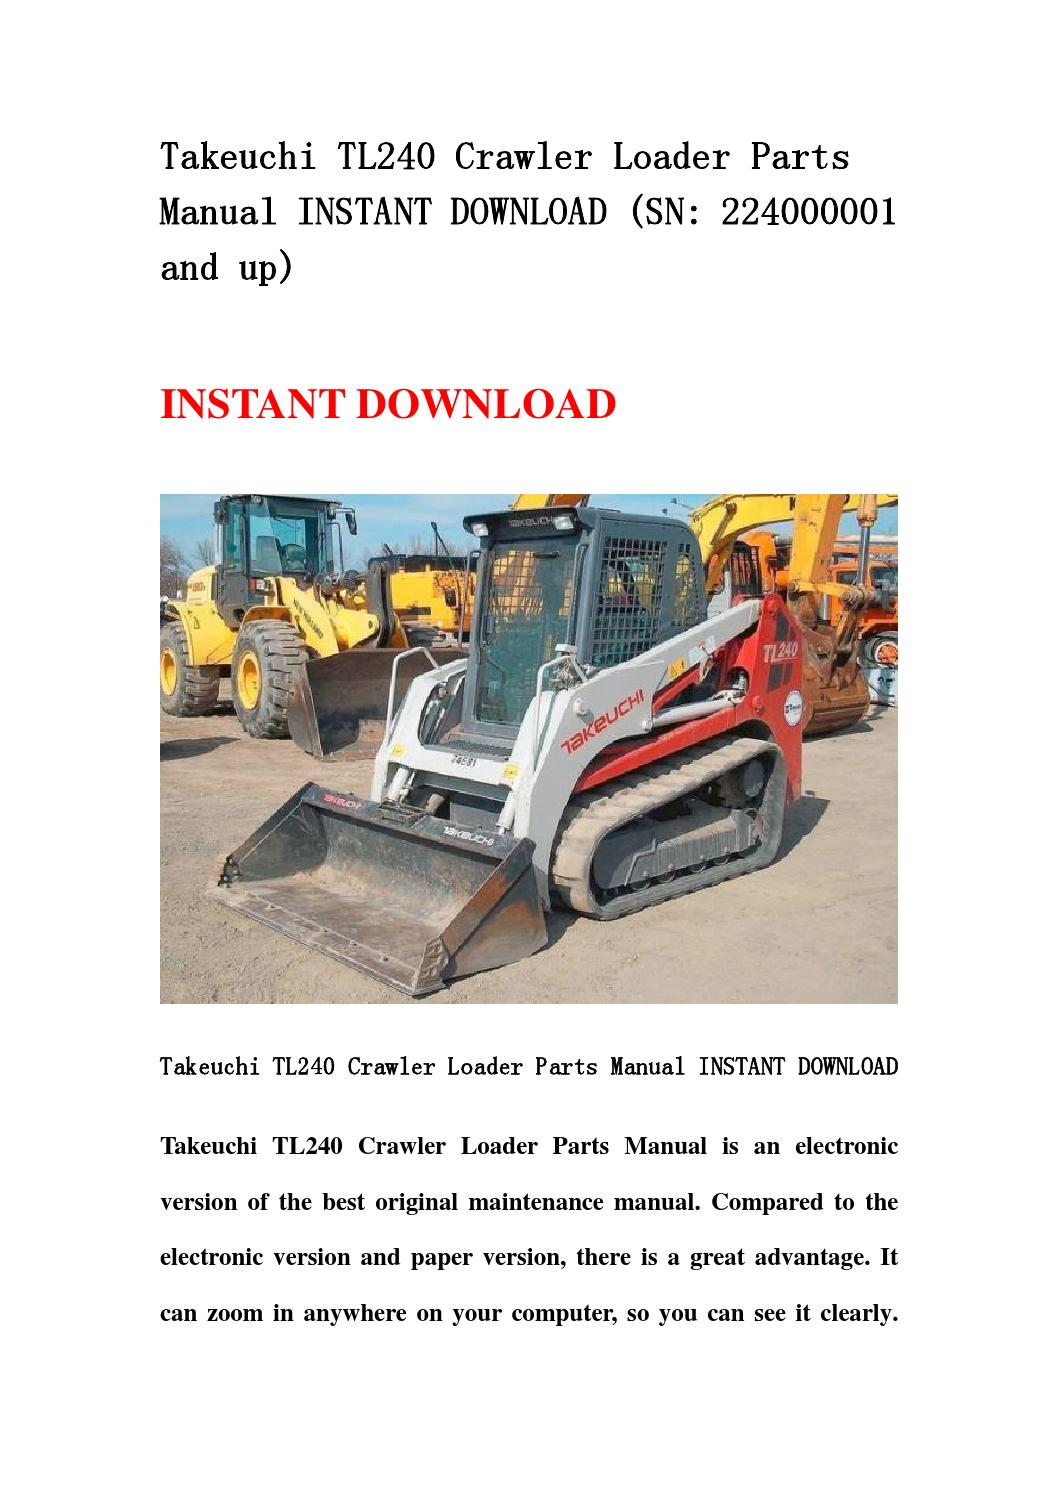 Takeuchi Tl240 Crawler Loader Parts Manual Instant Download  Sn 224000001 And Up  By Ksefmme